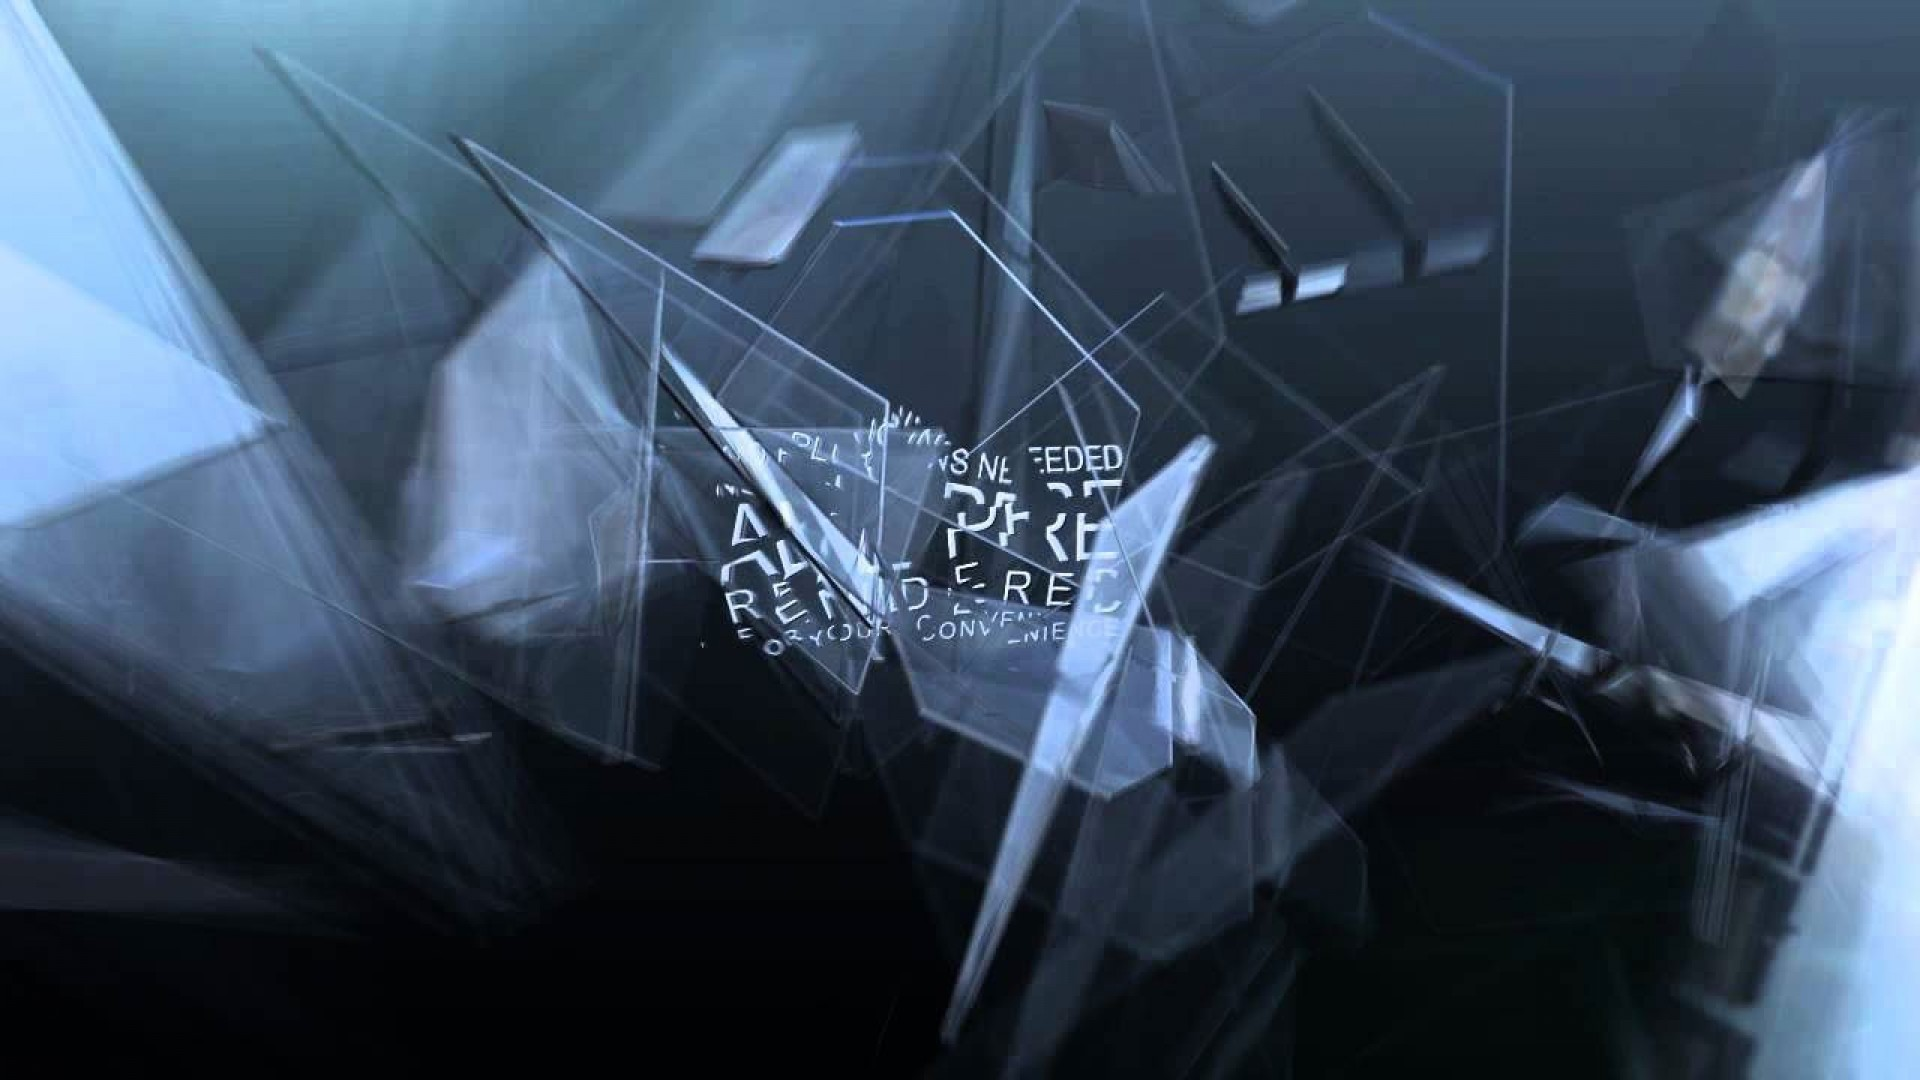 002 Amazing Free After Effect Template Intro Download Inspiration  Zip Adobe Cc Cs61920